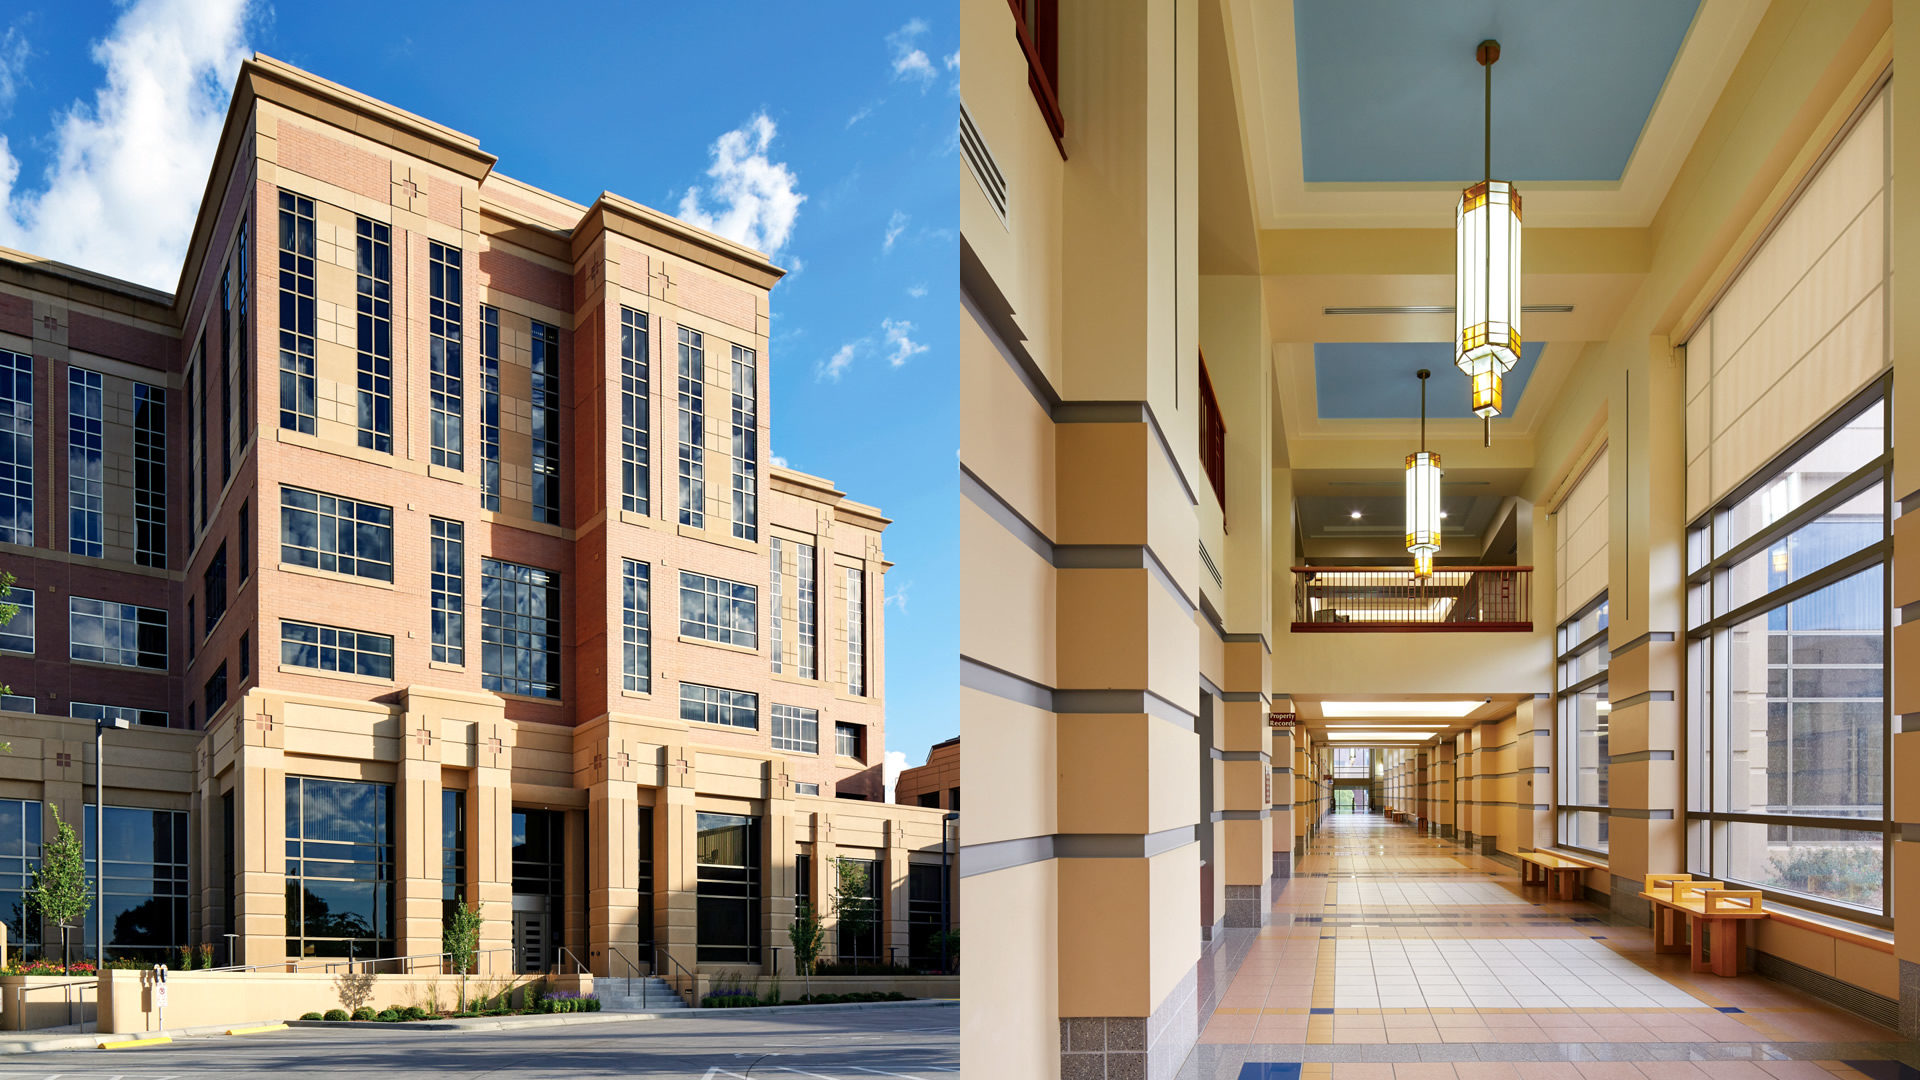 Olmsted County Government Center Rochester MN_Exterior Entrance View and Interior Corridor View